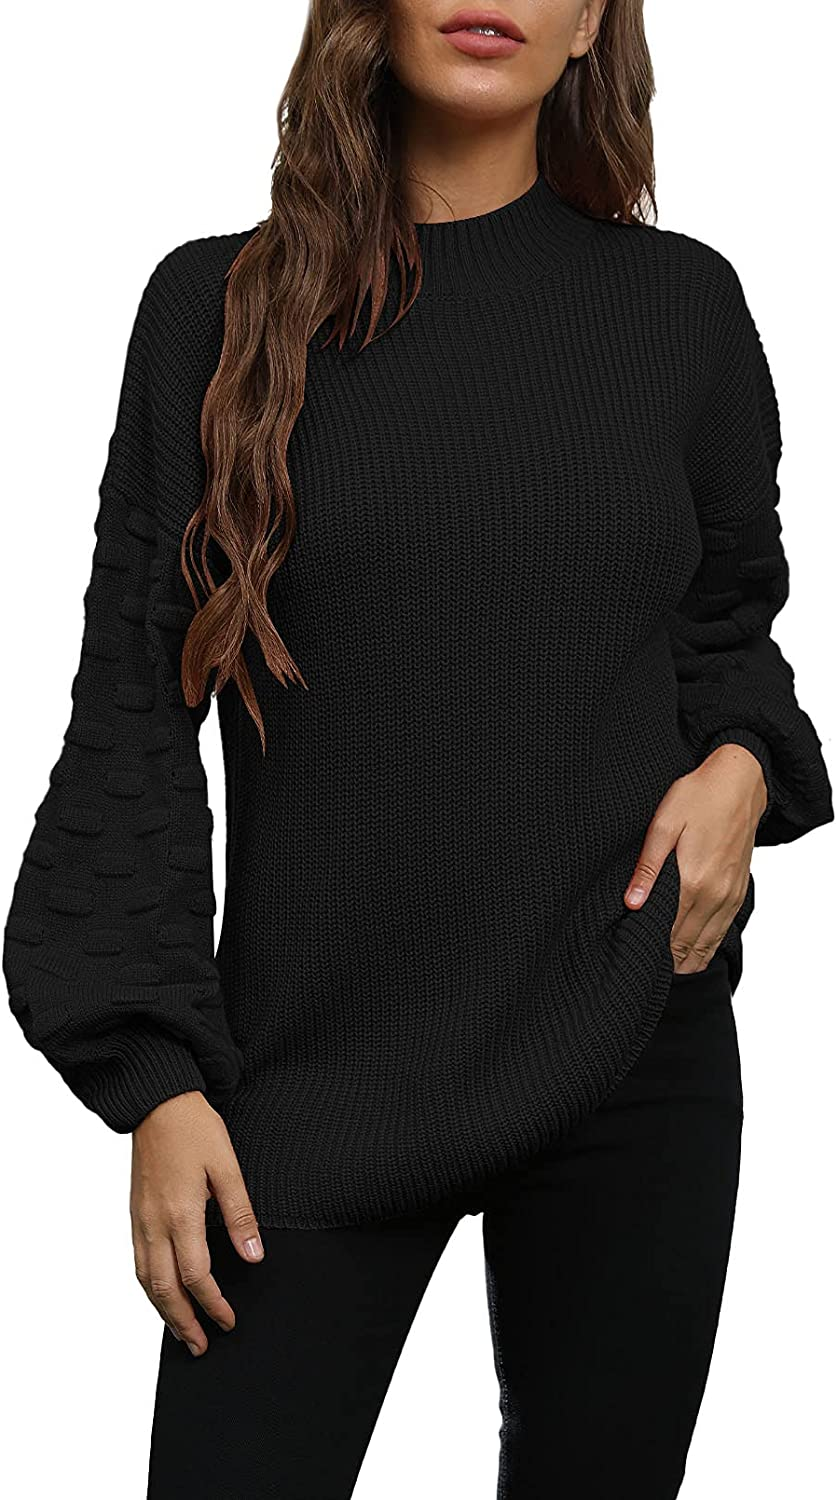 Meenew Women's Casual Loose Sweater Lantern Sleeve Chunky Knitted Pullover Tops